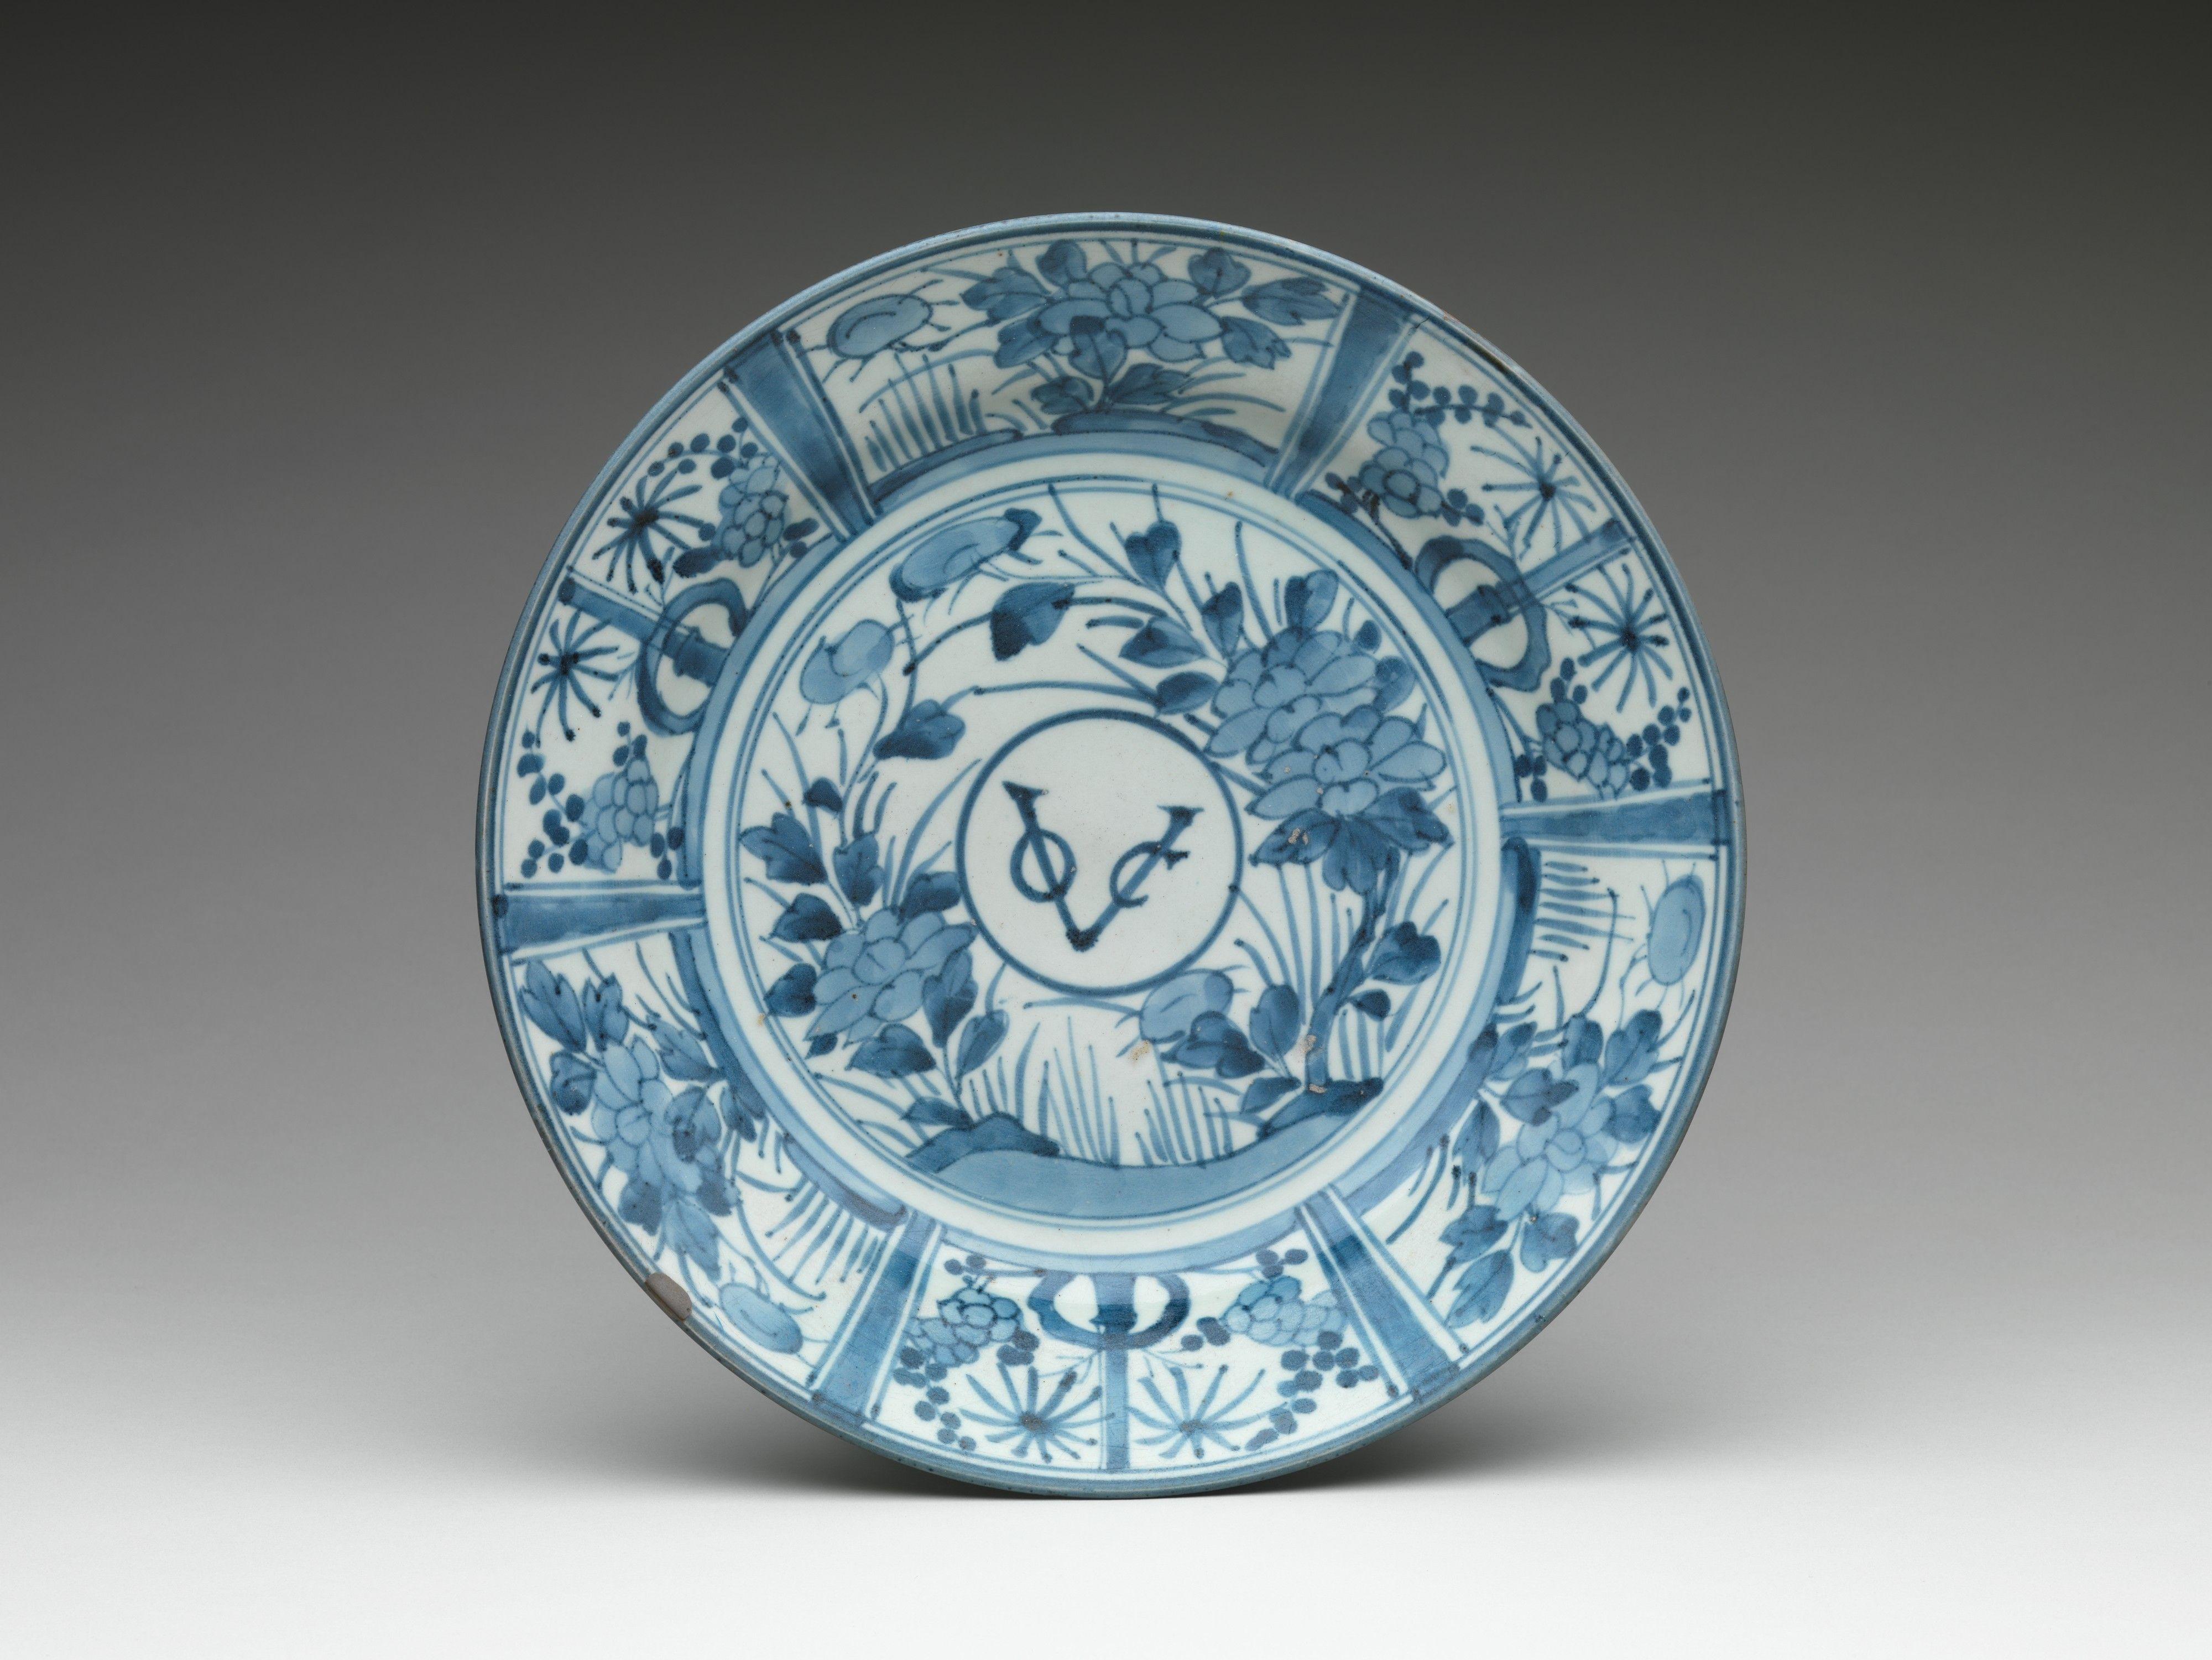 This Porcelain Dish Is Emblazoned With The Monogram Voc Which Stands For The Vereenigde Oost Indische Compagnie Japanese Porcelain East India Company Plates